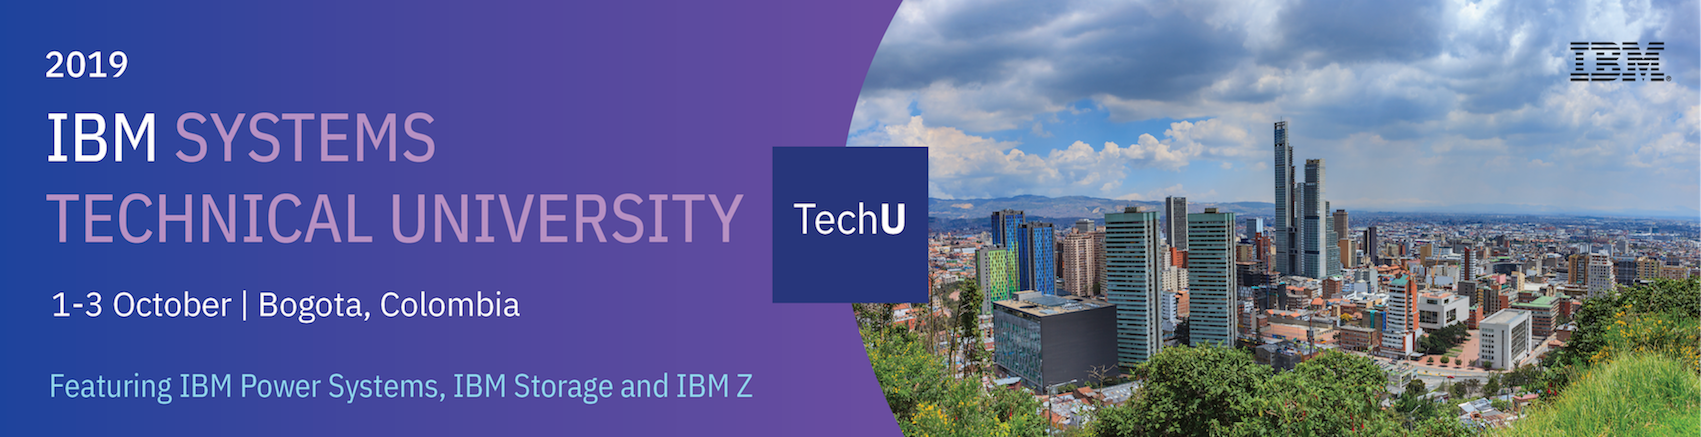 2019 Bogota - IBM Technical University